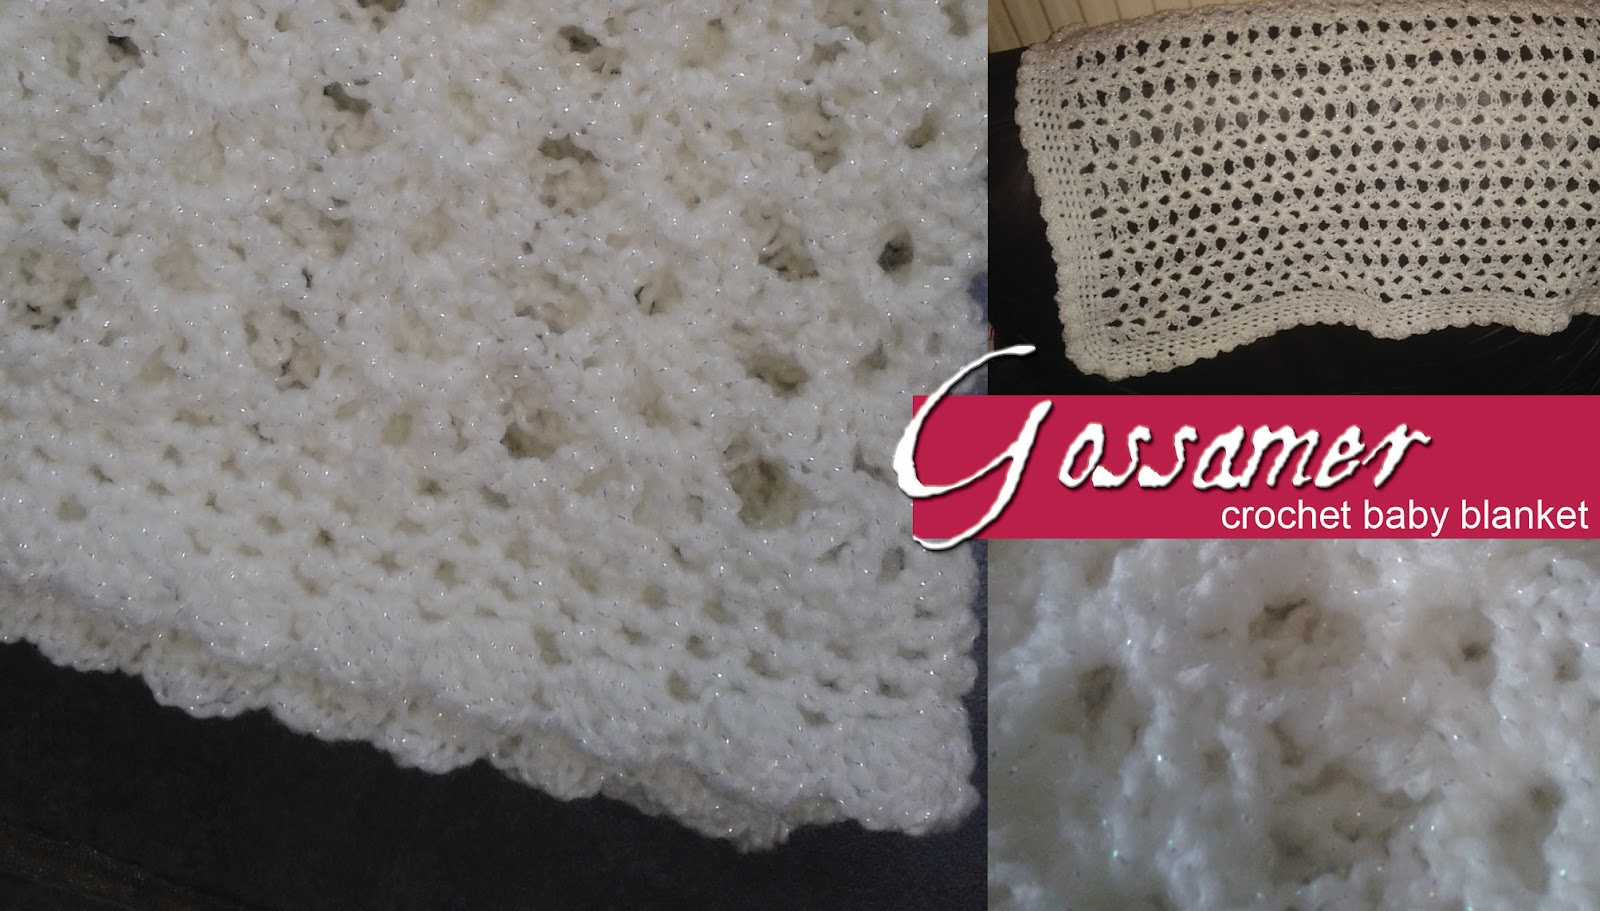 Lolly\'s Crafty Crochet: Free Pattern: Gossamer Crochet Baby Blanket